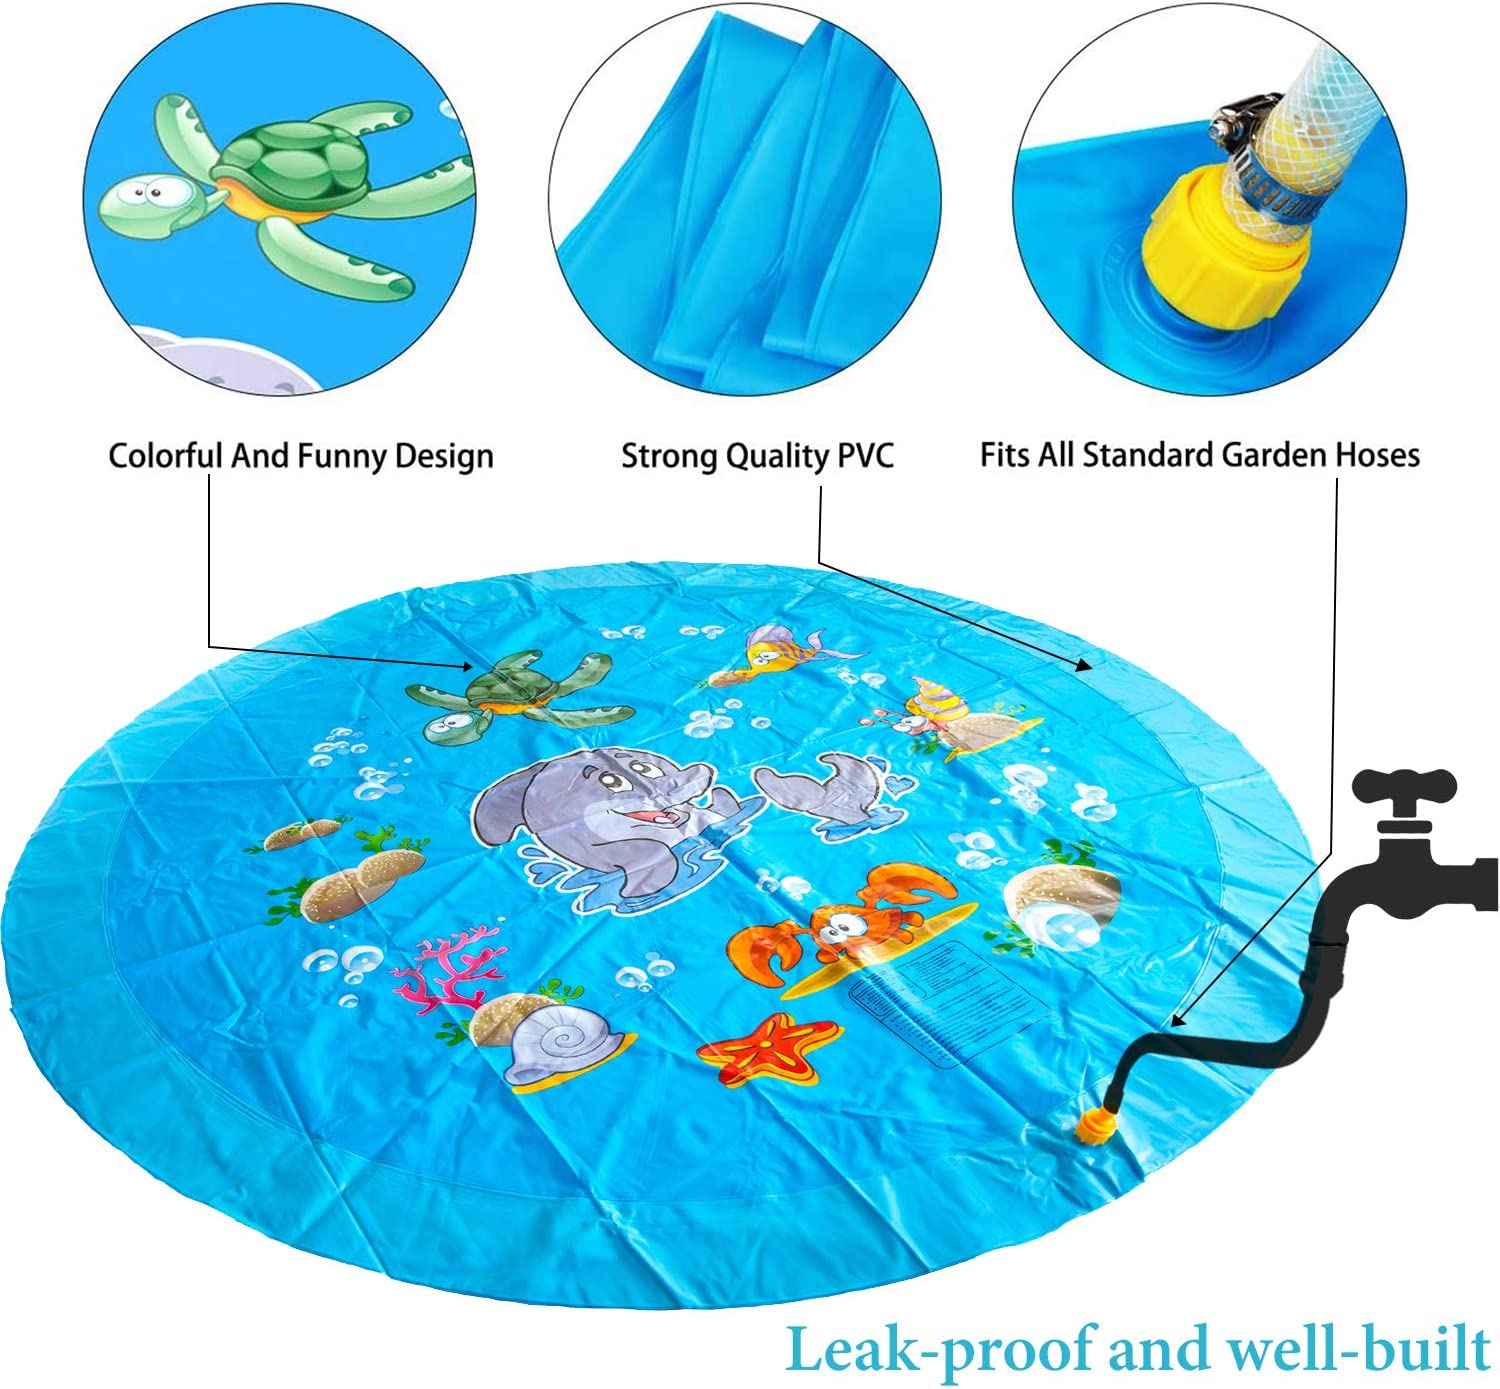 Heavy-Duty Splash Pad for Kids Summer Toys for Toddlers,Baby Water Mat for Backyard Games Toysery Inflatable Sprinkler for Kids Water Play Mat for Outdoor Activities and Fun Stuff